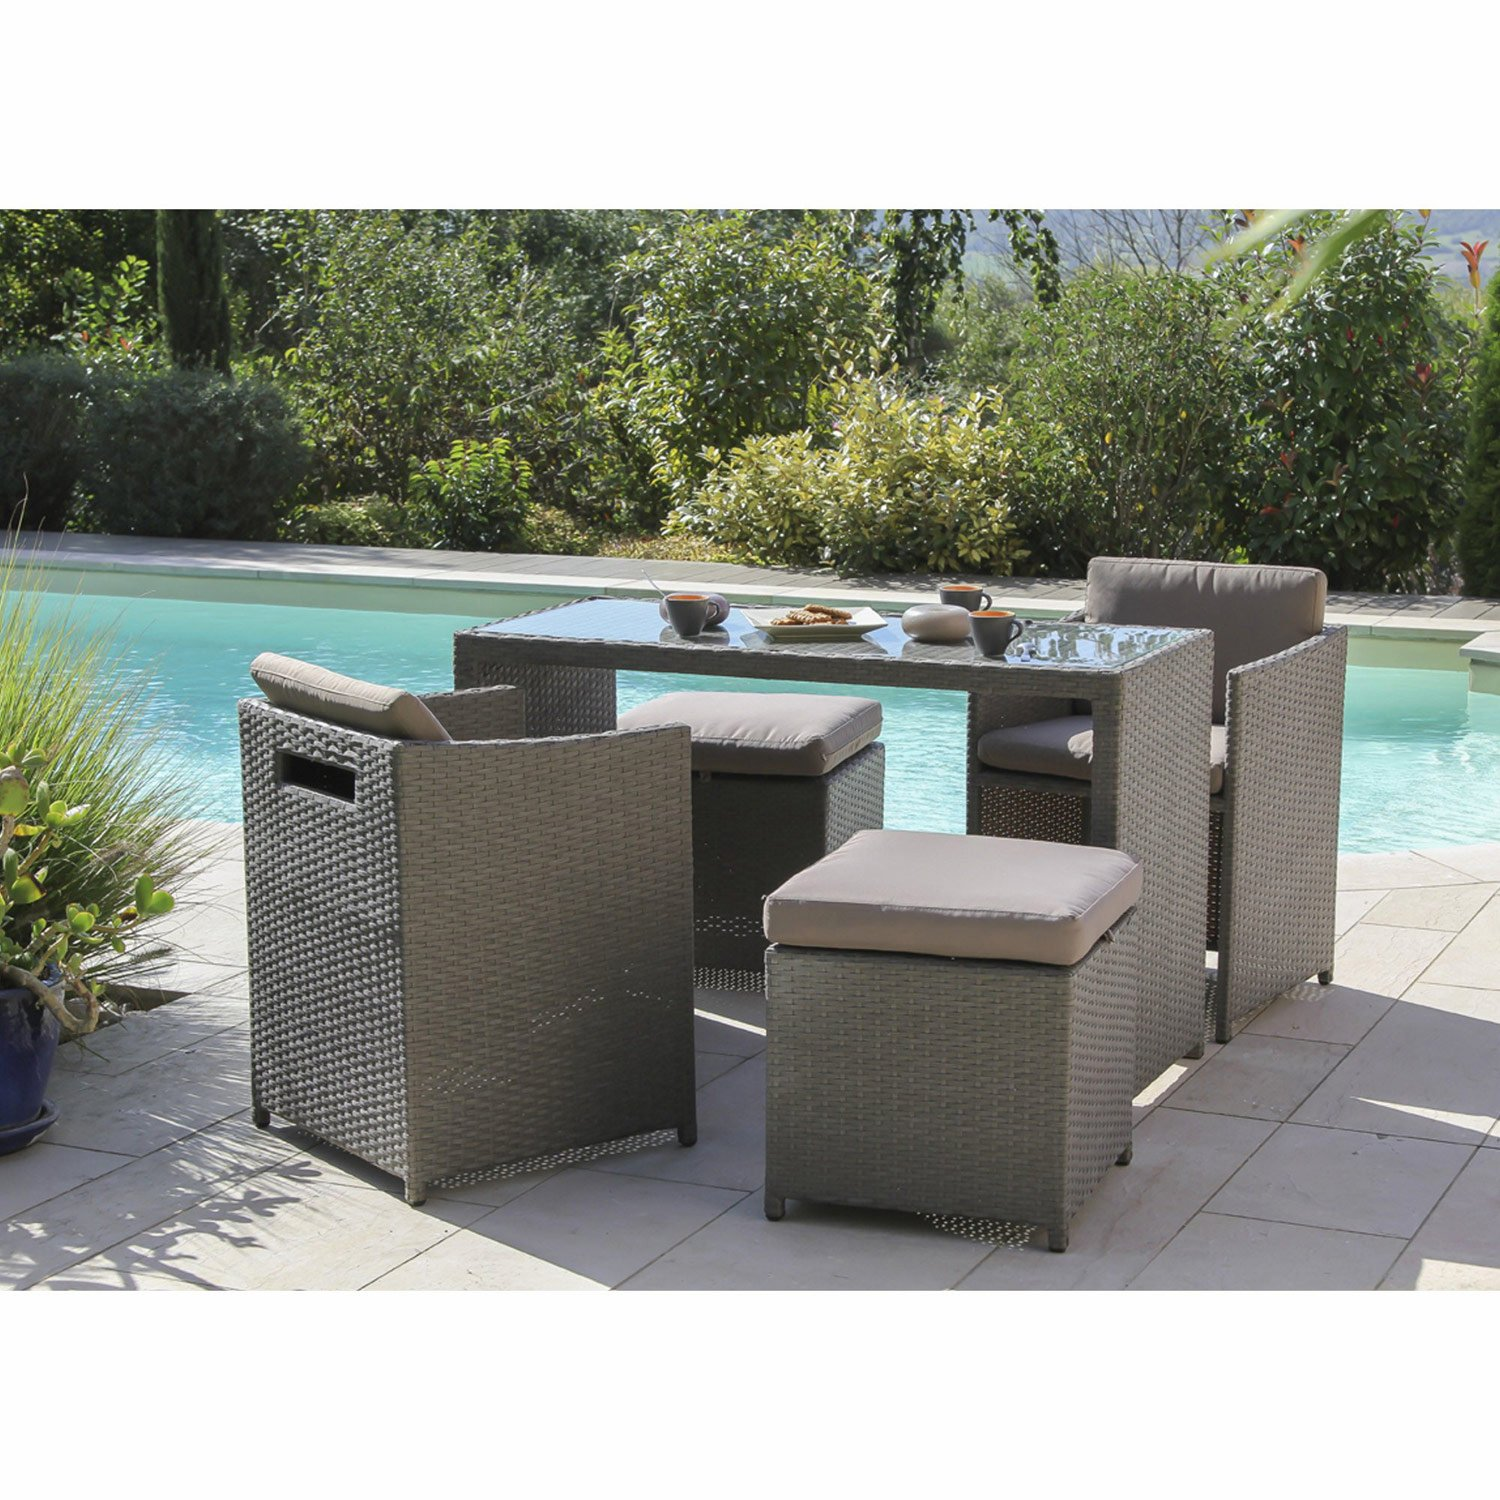 soldes salon de jardin r sine tress e gris id es de d coration int rieure french decor. Black Bedroom Furniture Sets. Home Design Ideas